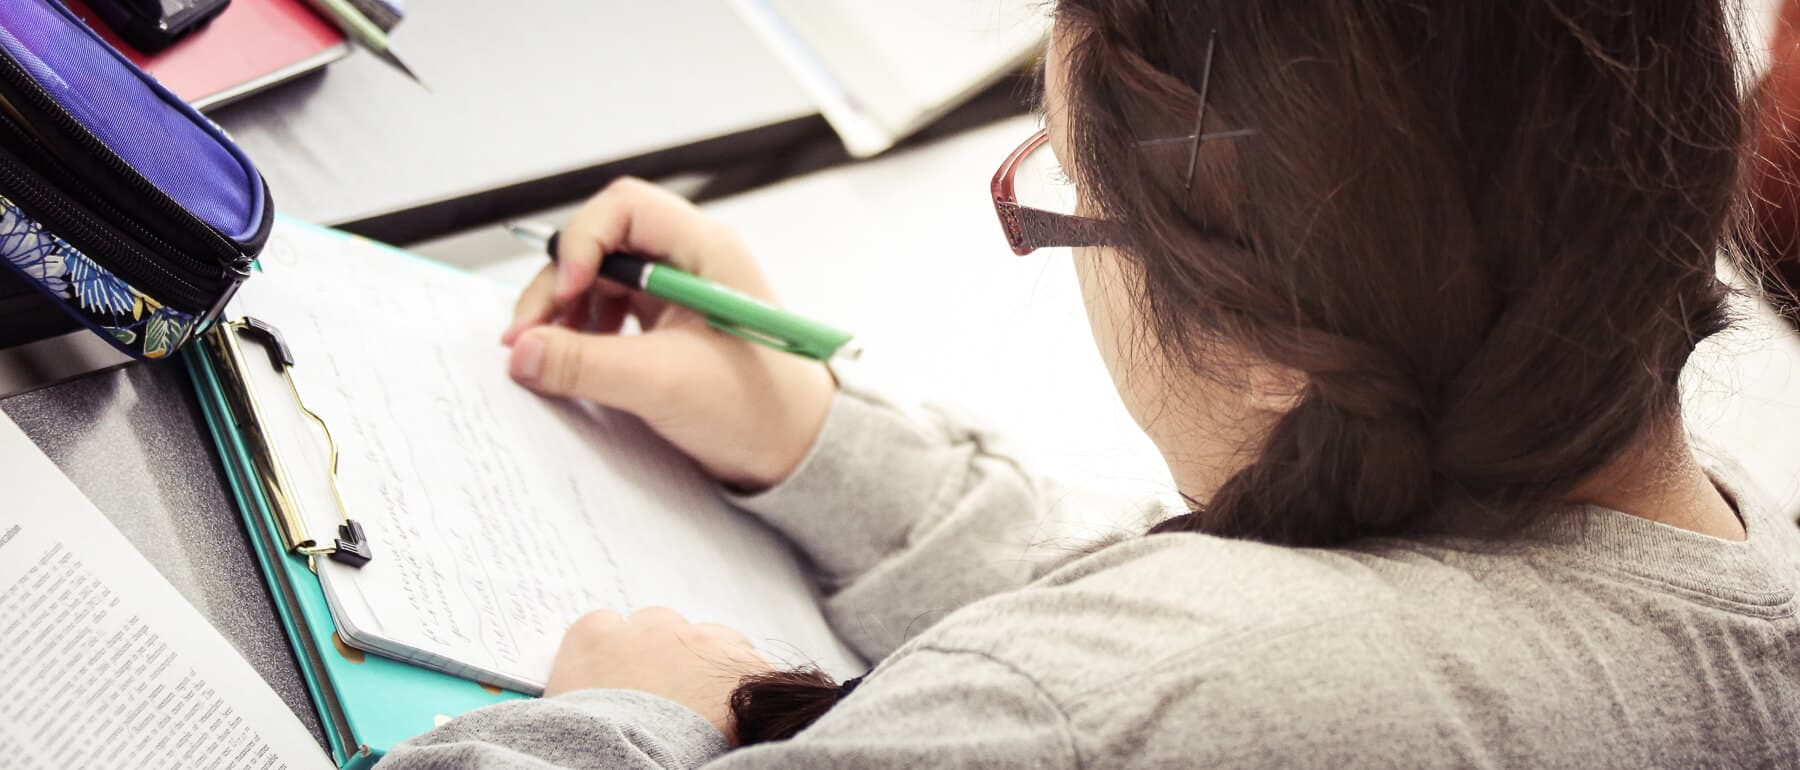 A UWGB student takes notes in class.